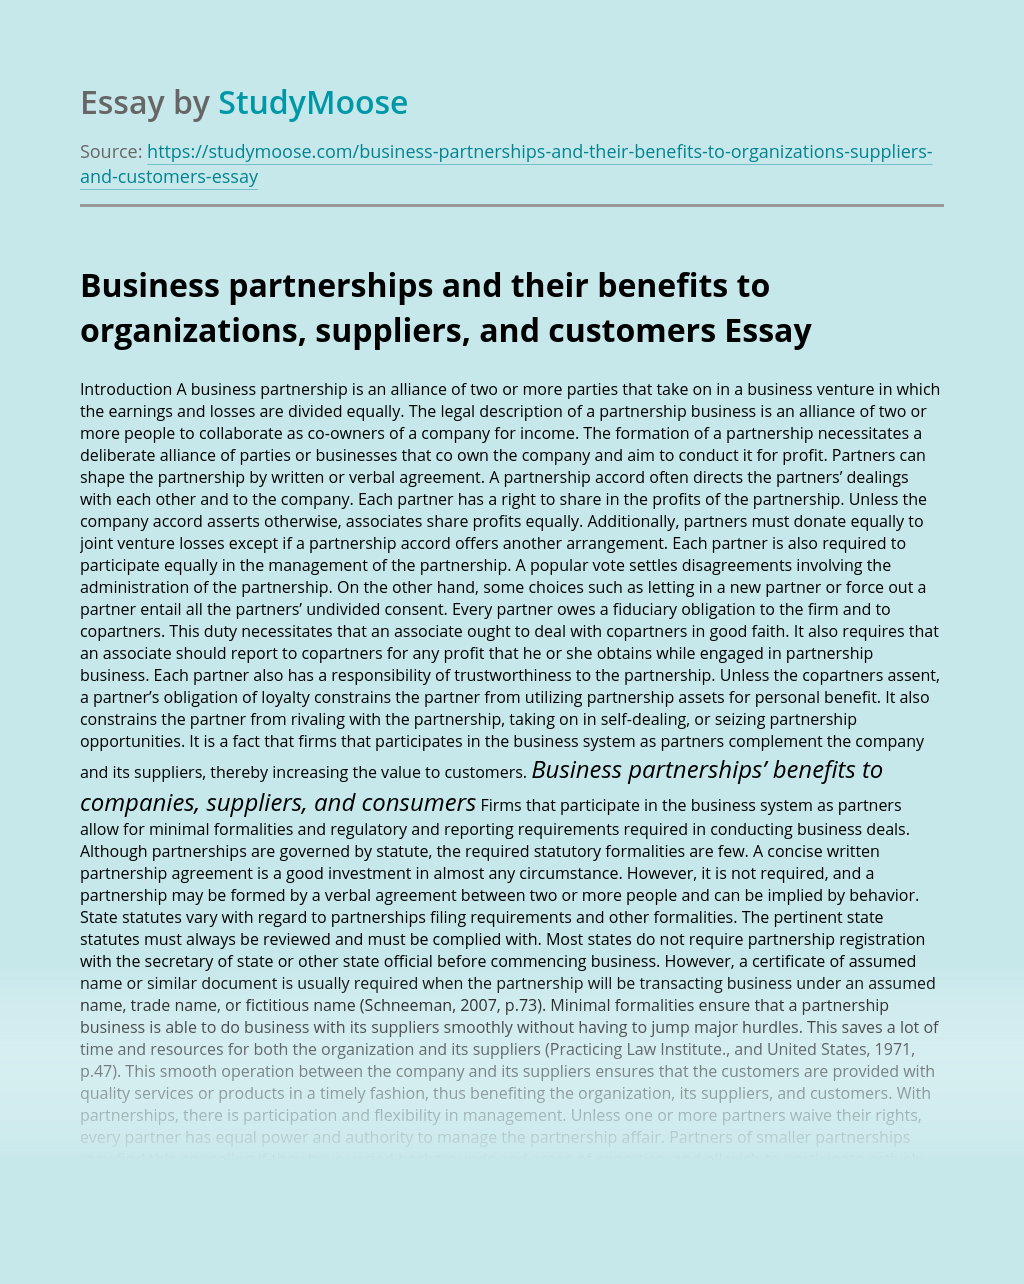 Business partnerships and their benefits to organizations, suppliers, and customers